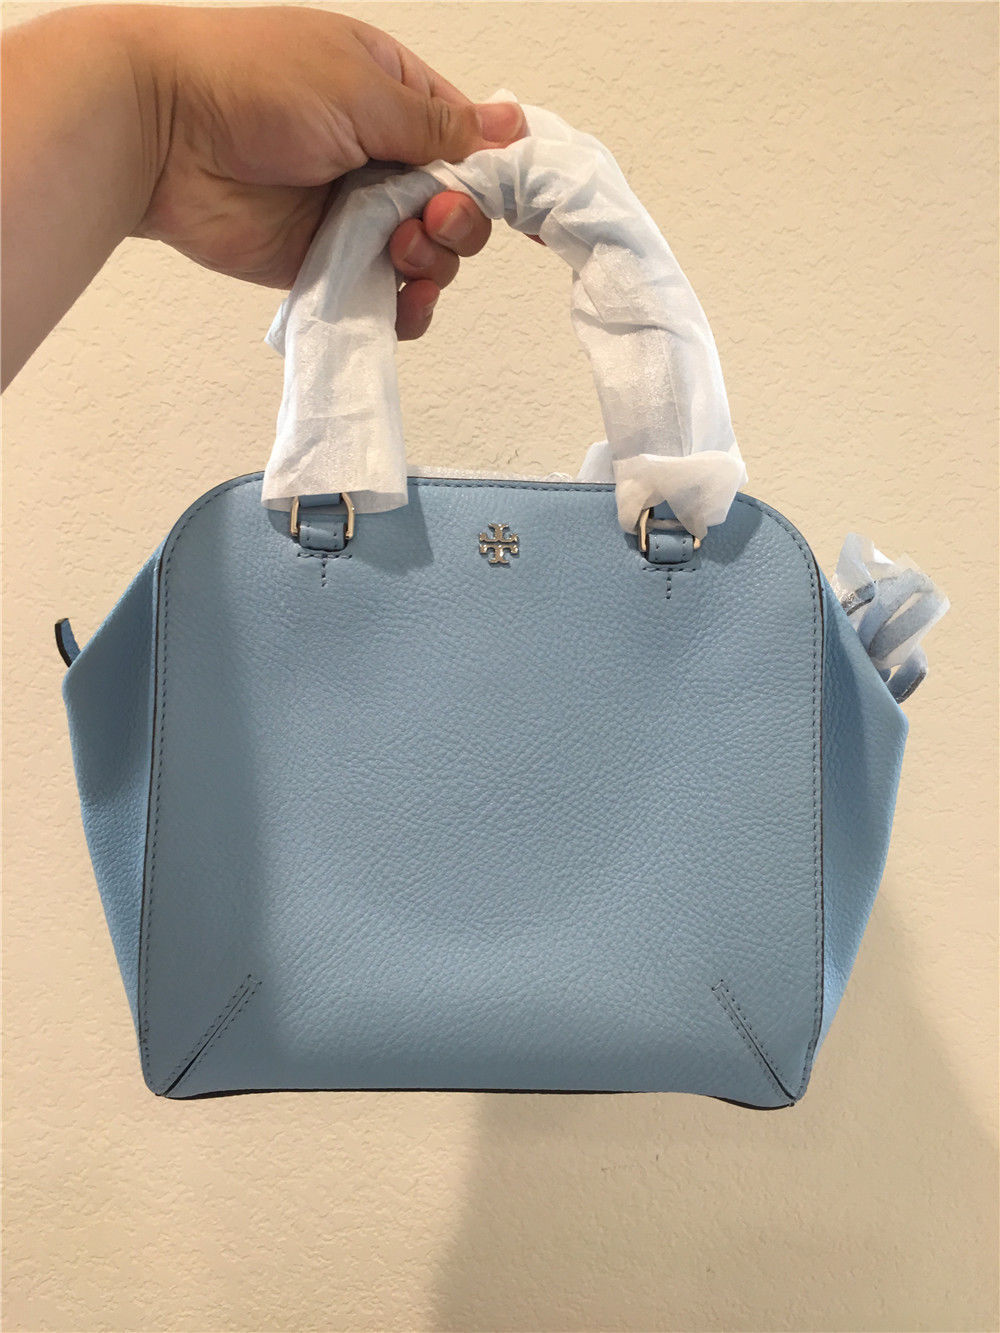 cc1330dccdc 57. 57. TORY BURCH Robinson Pebbled Mini Satchel in Riviera Blue leather bag  12169733 · TORY ...